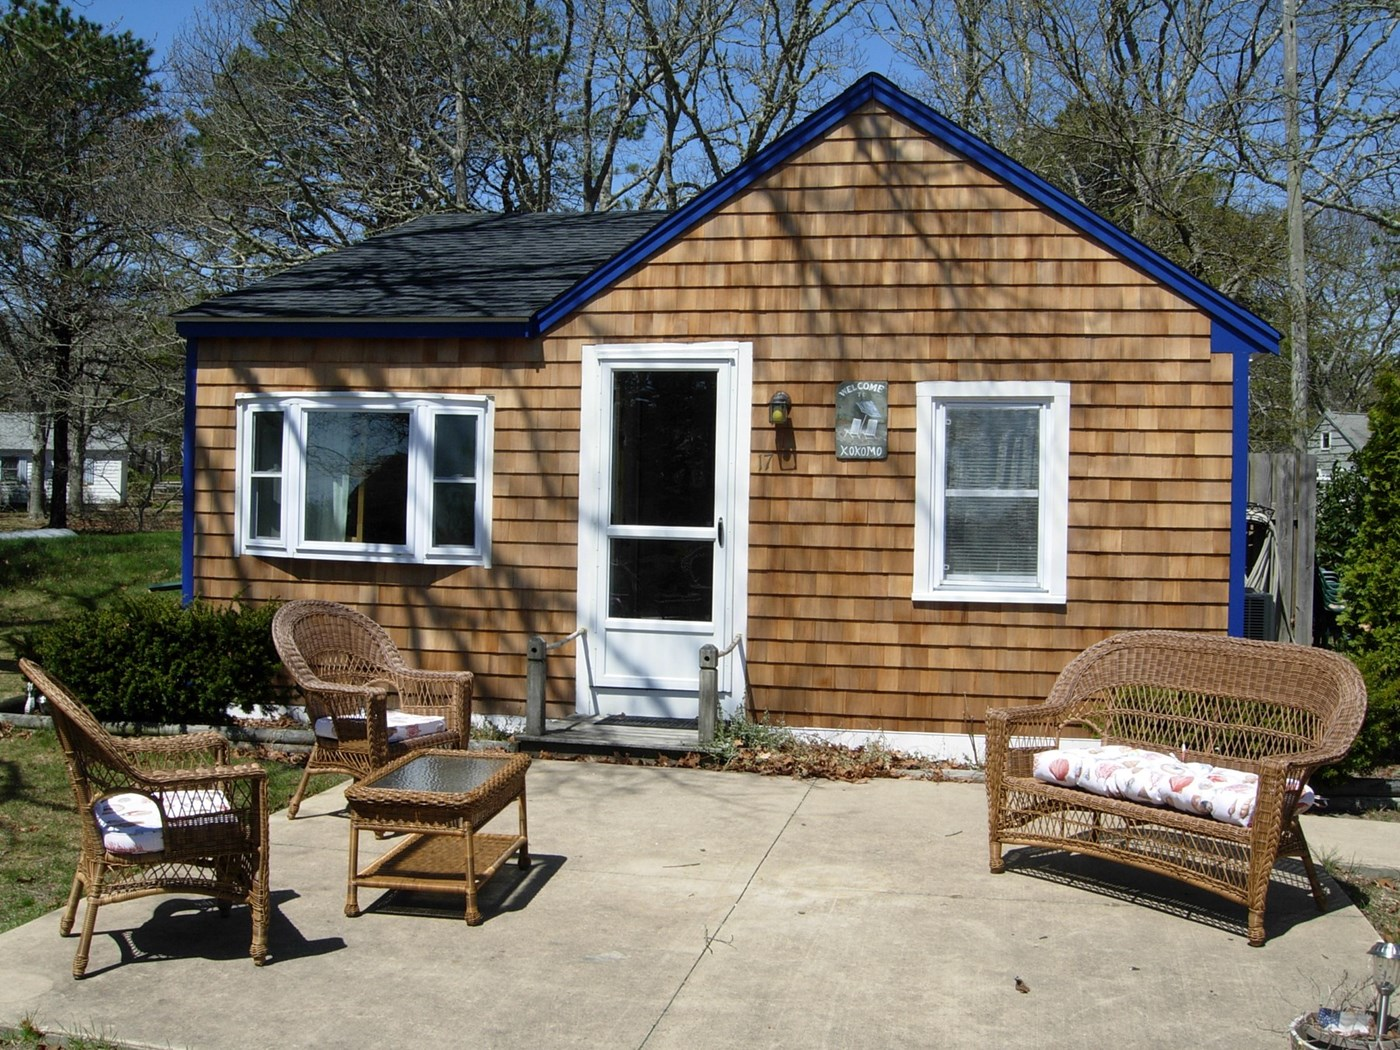 Yarmouth Vacation Rental Home In Cape Cod Ma 02673 Id 27409